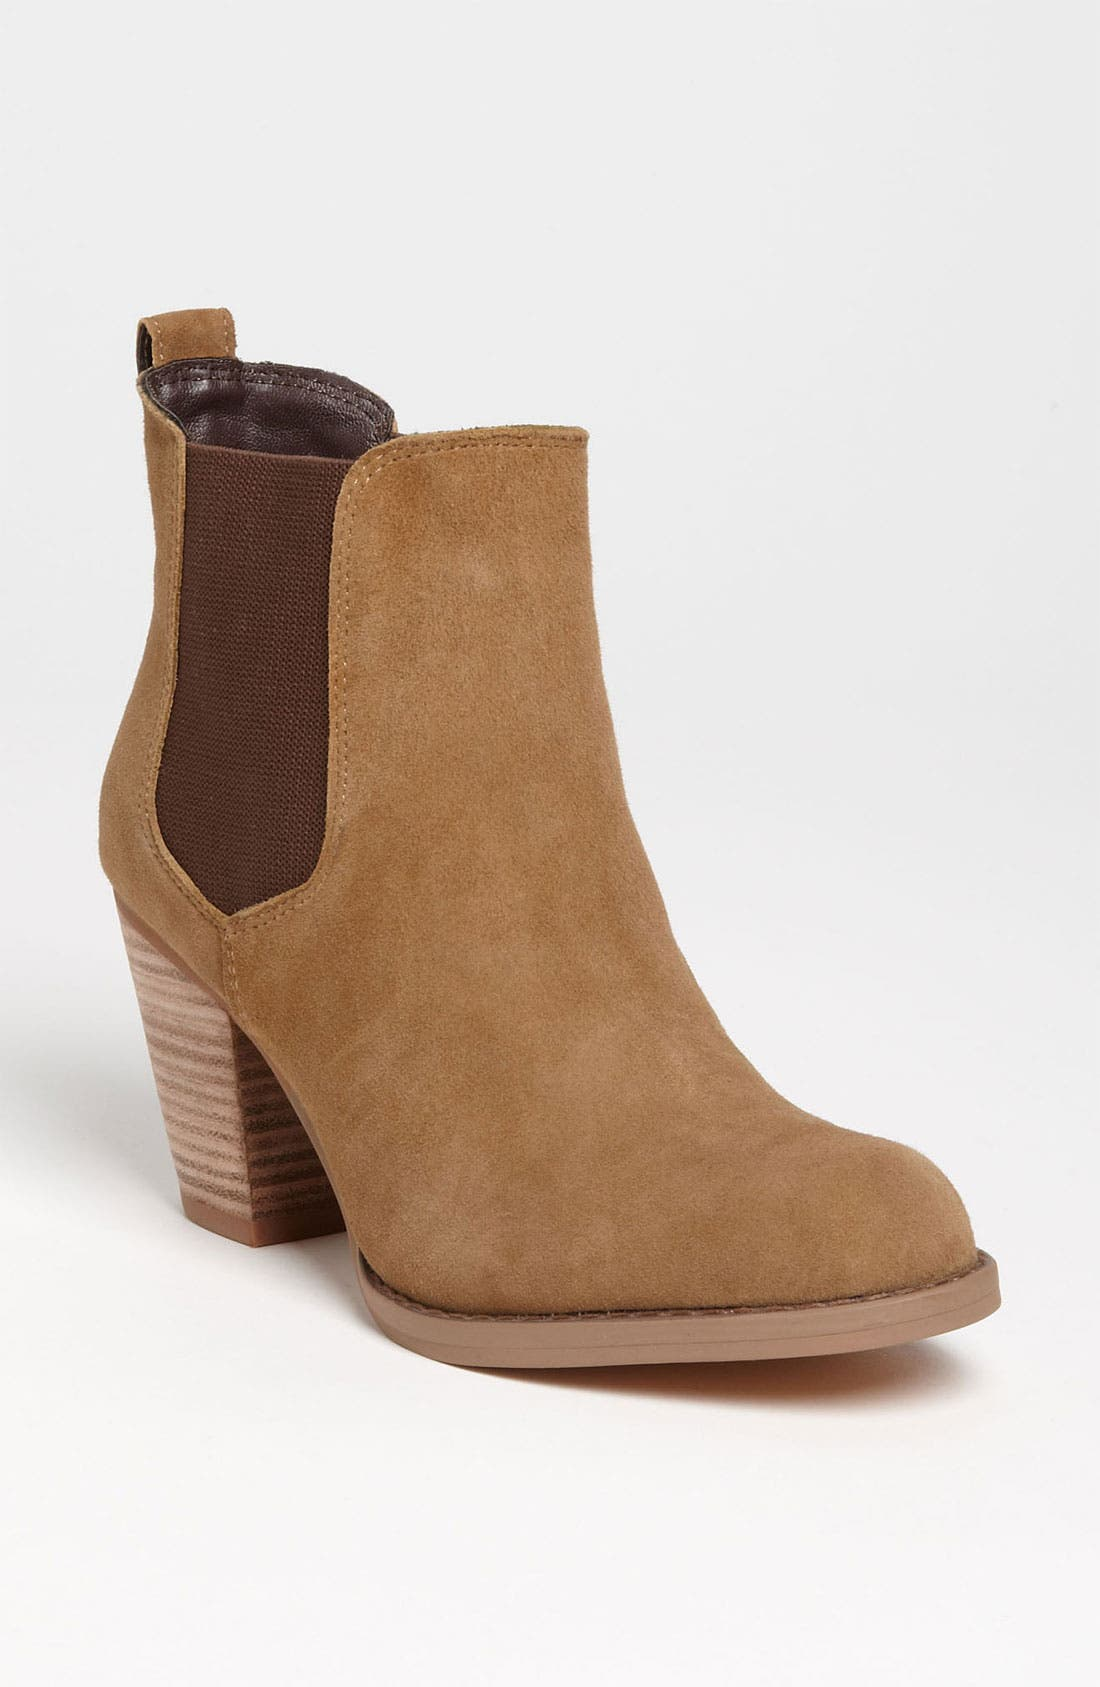 Alternate Image 1 Selected - Steve Madden 'Lambi' Boot